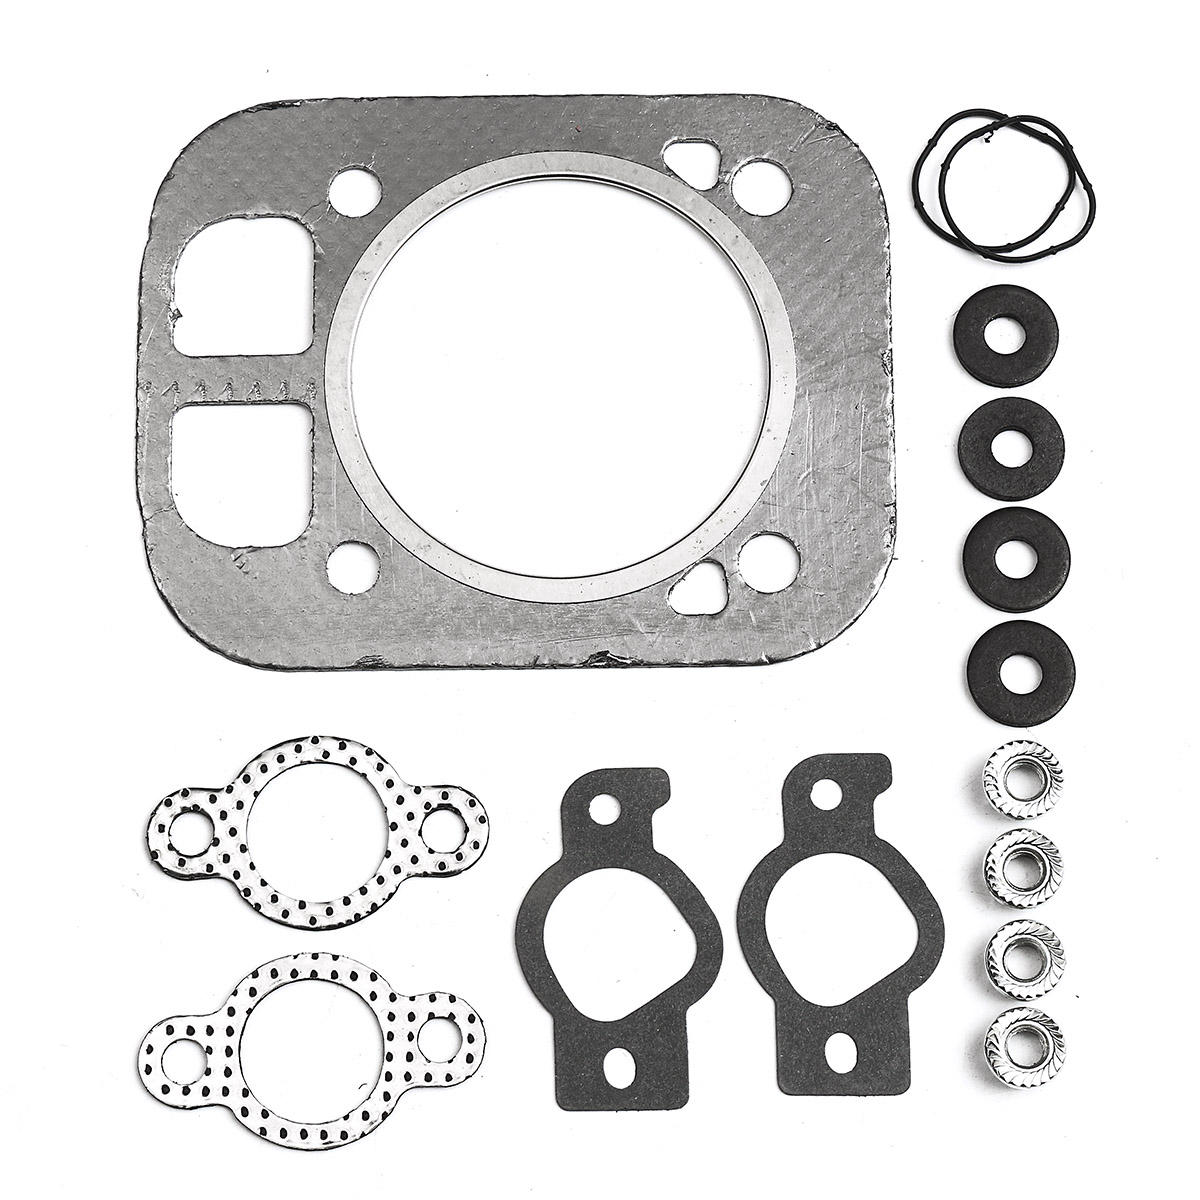 Lawnmower Replacement Cylinder Head Gasket Repair Kit For KOHLER CH22 CV730 24-841-03S & 24-841-04S from Banggood